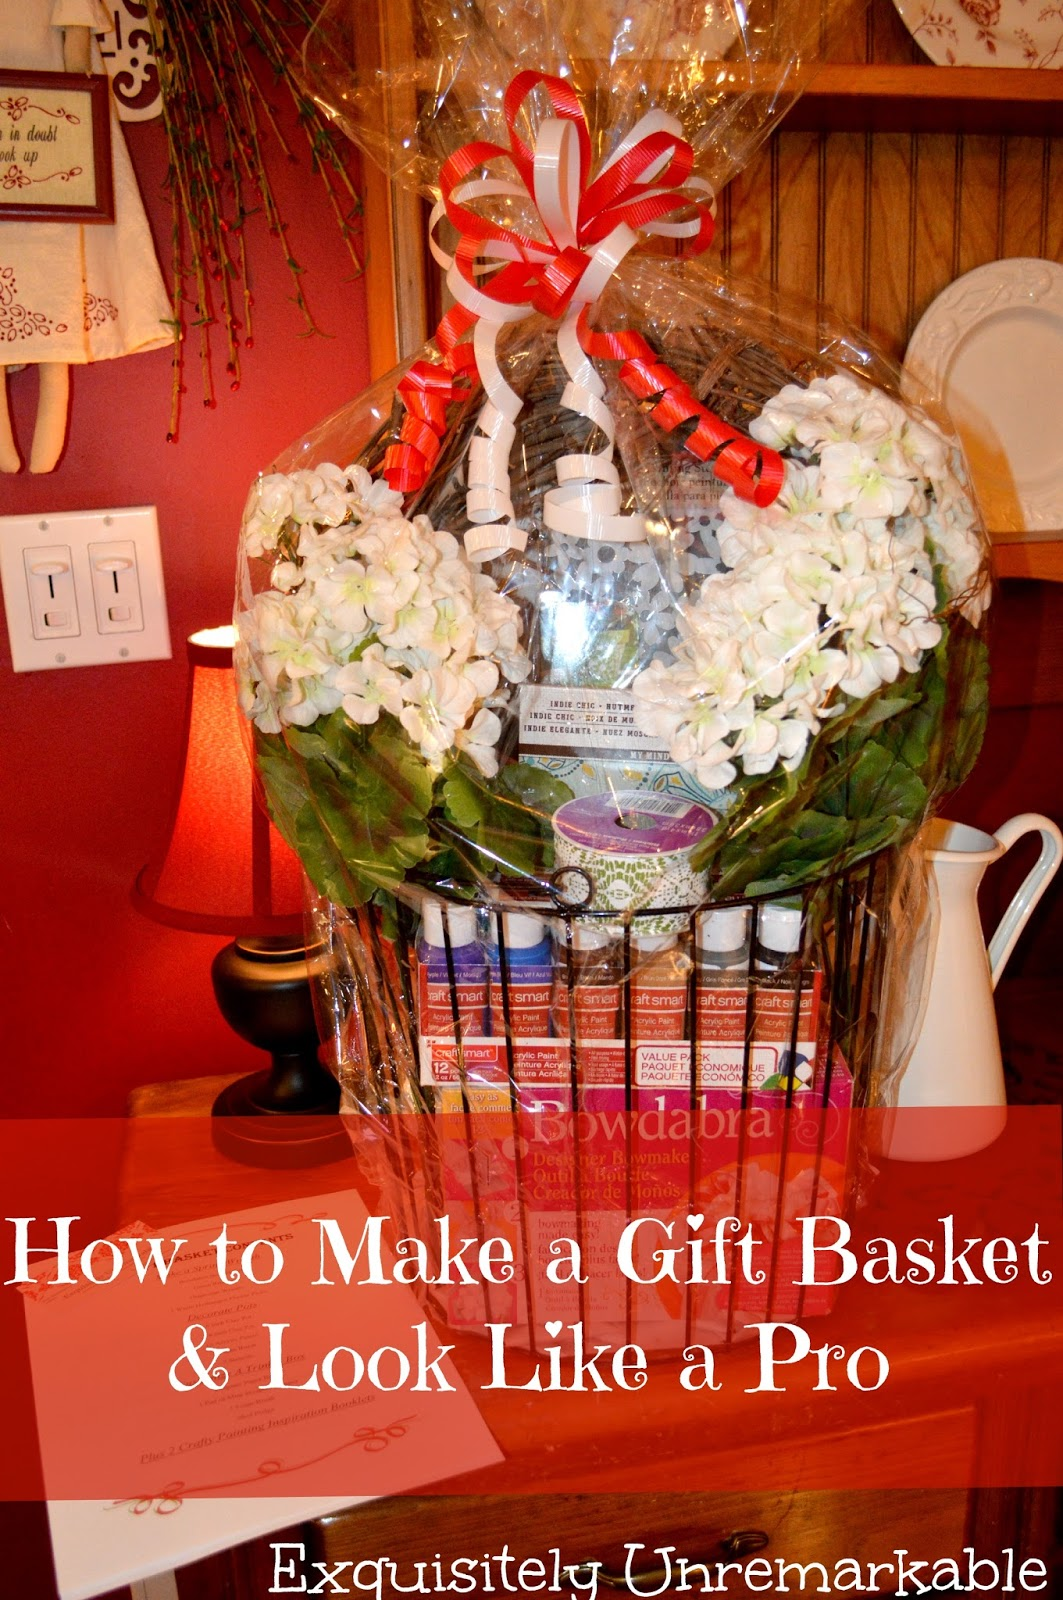 Create a gift basket and look like a pro